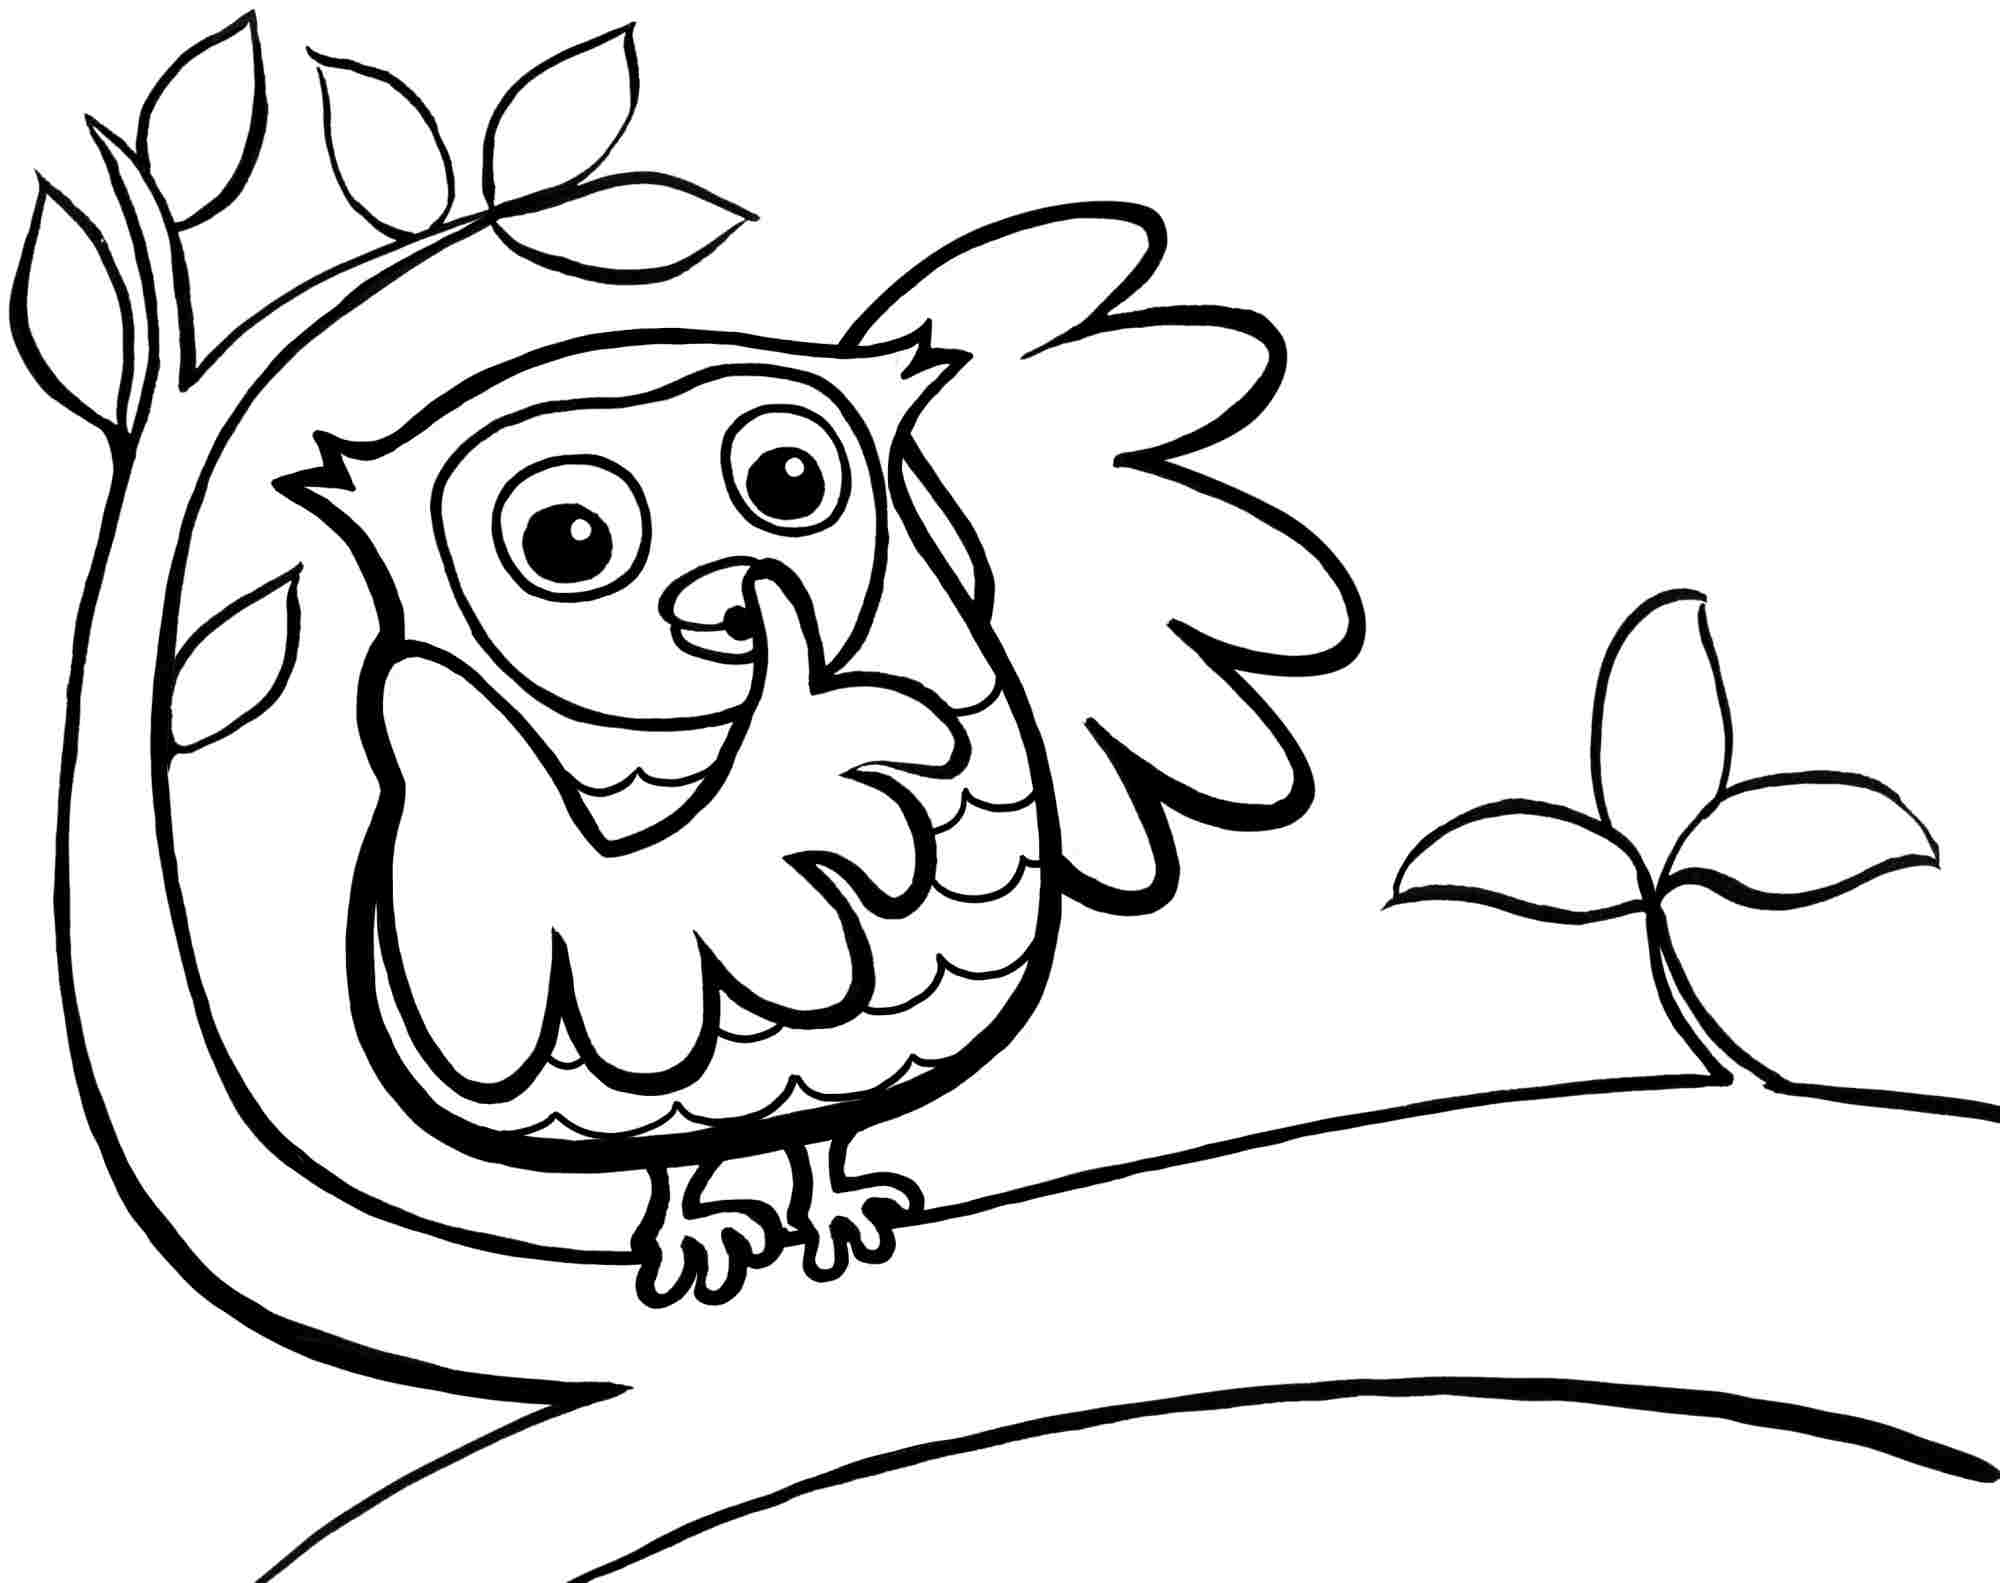 easy cute owl coloring pages easy cute owl coloring pages dejanato cute pages coloring owl easy